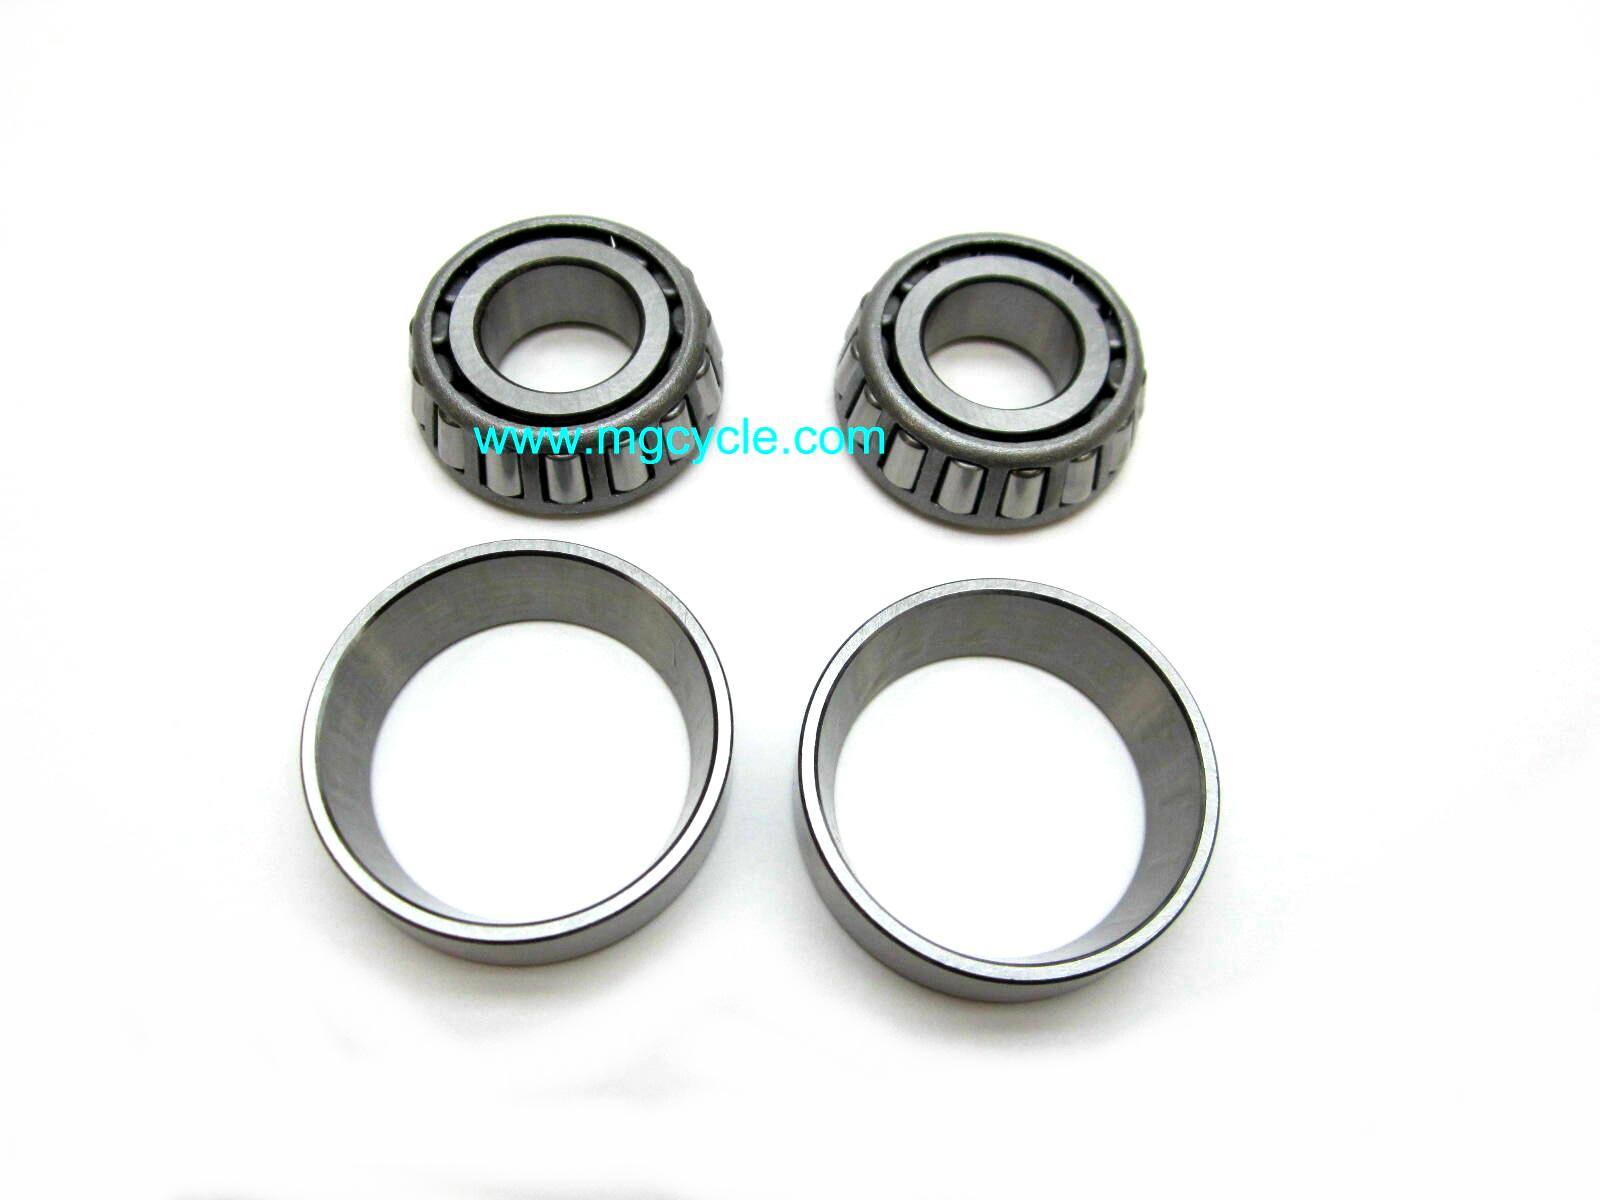 Swingarm pivot bearing set (2 bearings), many big twins